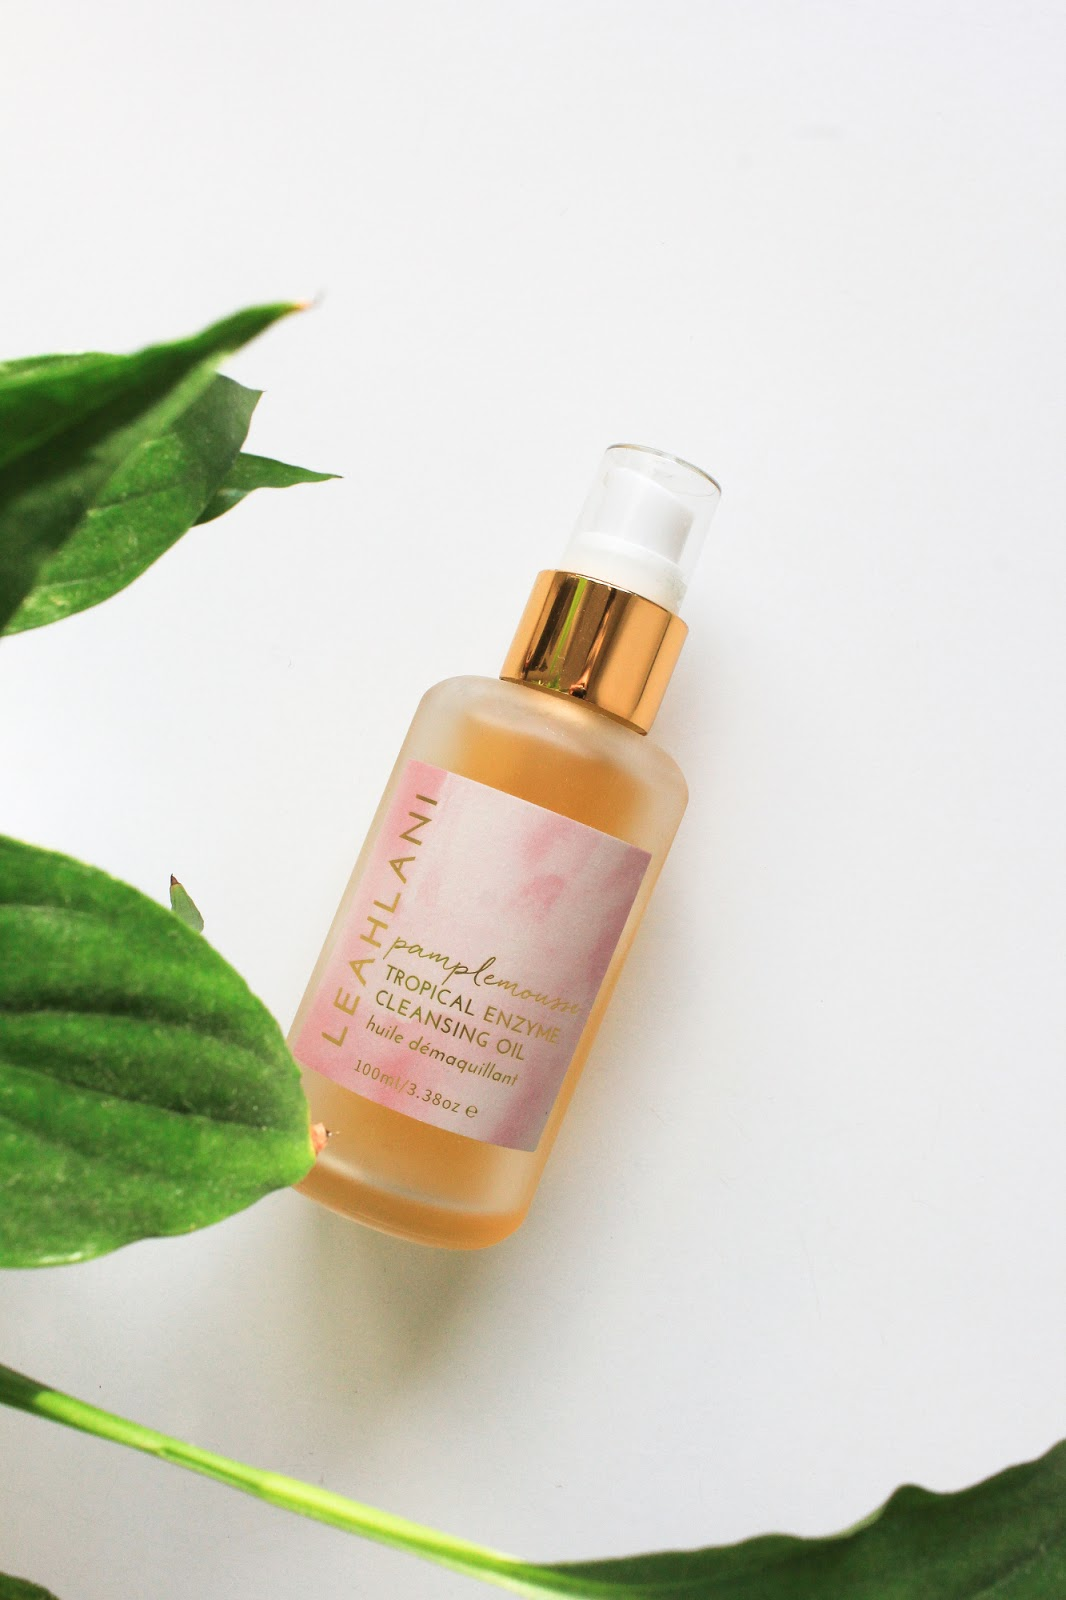 Leahlani Pamplemousse Tropical Enzyme Cleansing Oil